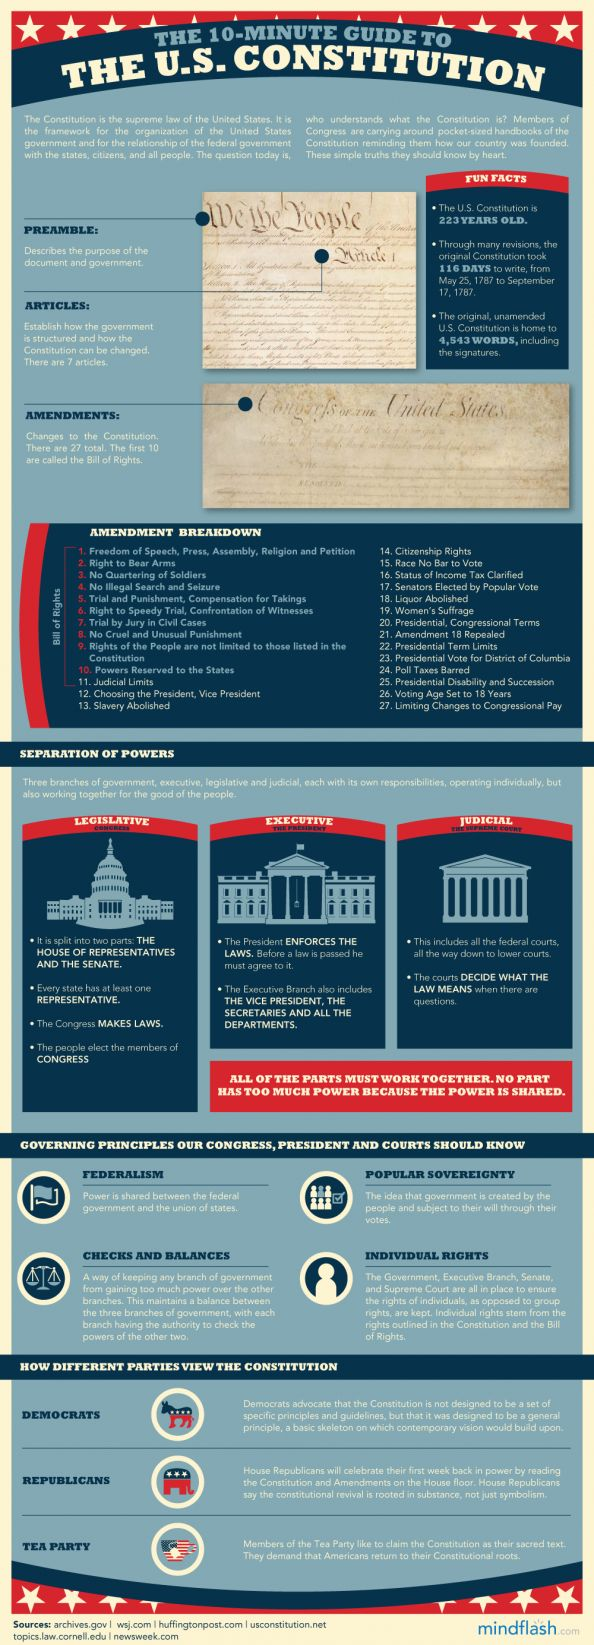 Here's a nice summary infographic on the U.S. Constitution.